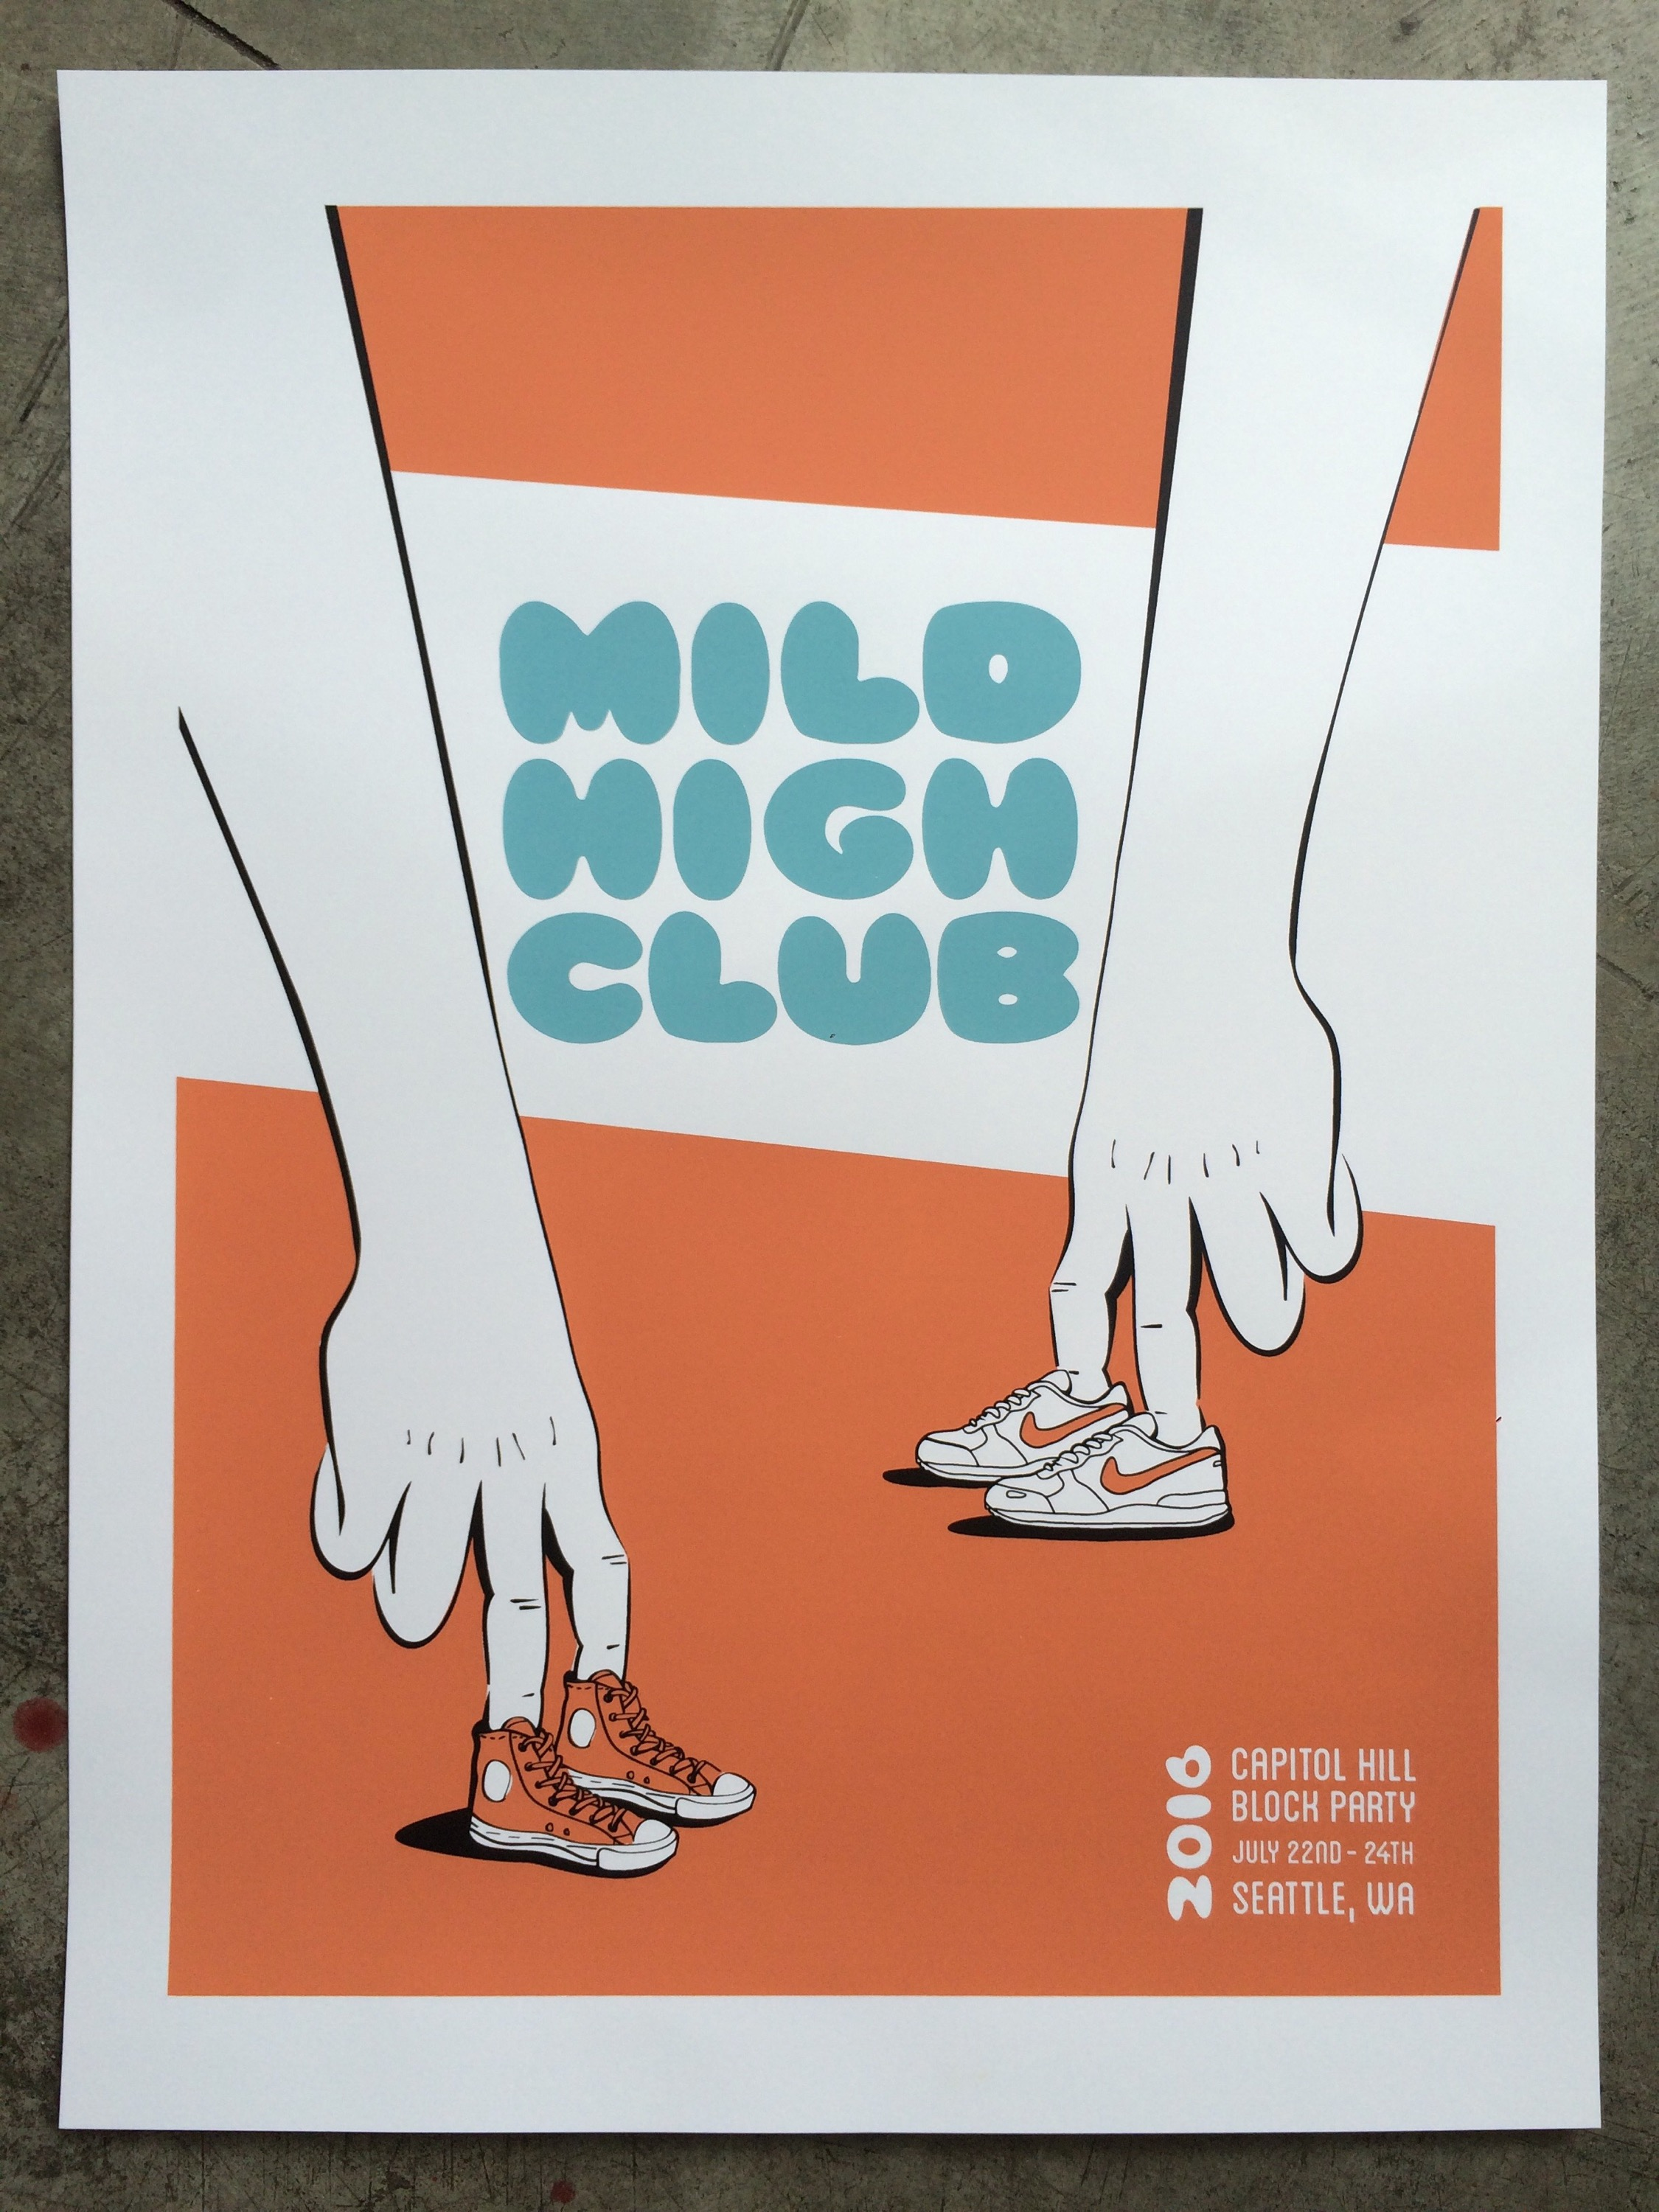 1 color poster design - Mild High Club 3 Color Poster Designed By Callie Logan